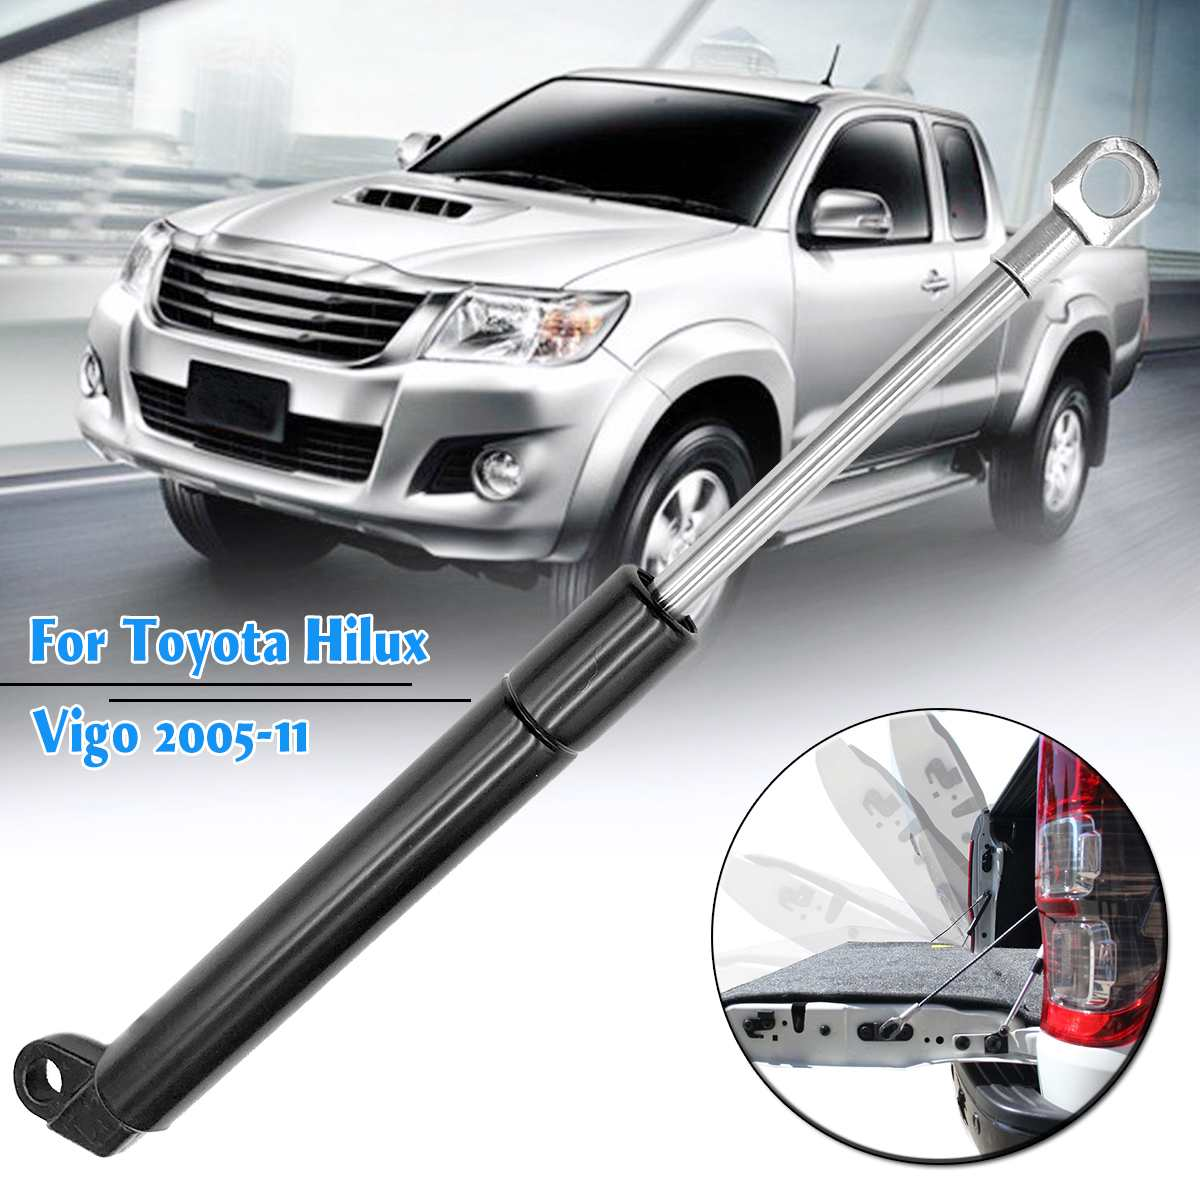 1Pcs Tailgate Slow Down Rear Trunk Tail Gate Strut Damper Gas Spring For Toyota Hilux Vigo 2005 2006 2007 2008 2009 2010 2011